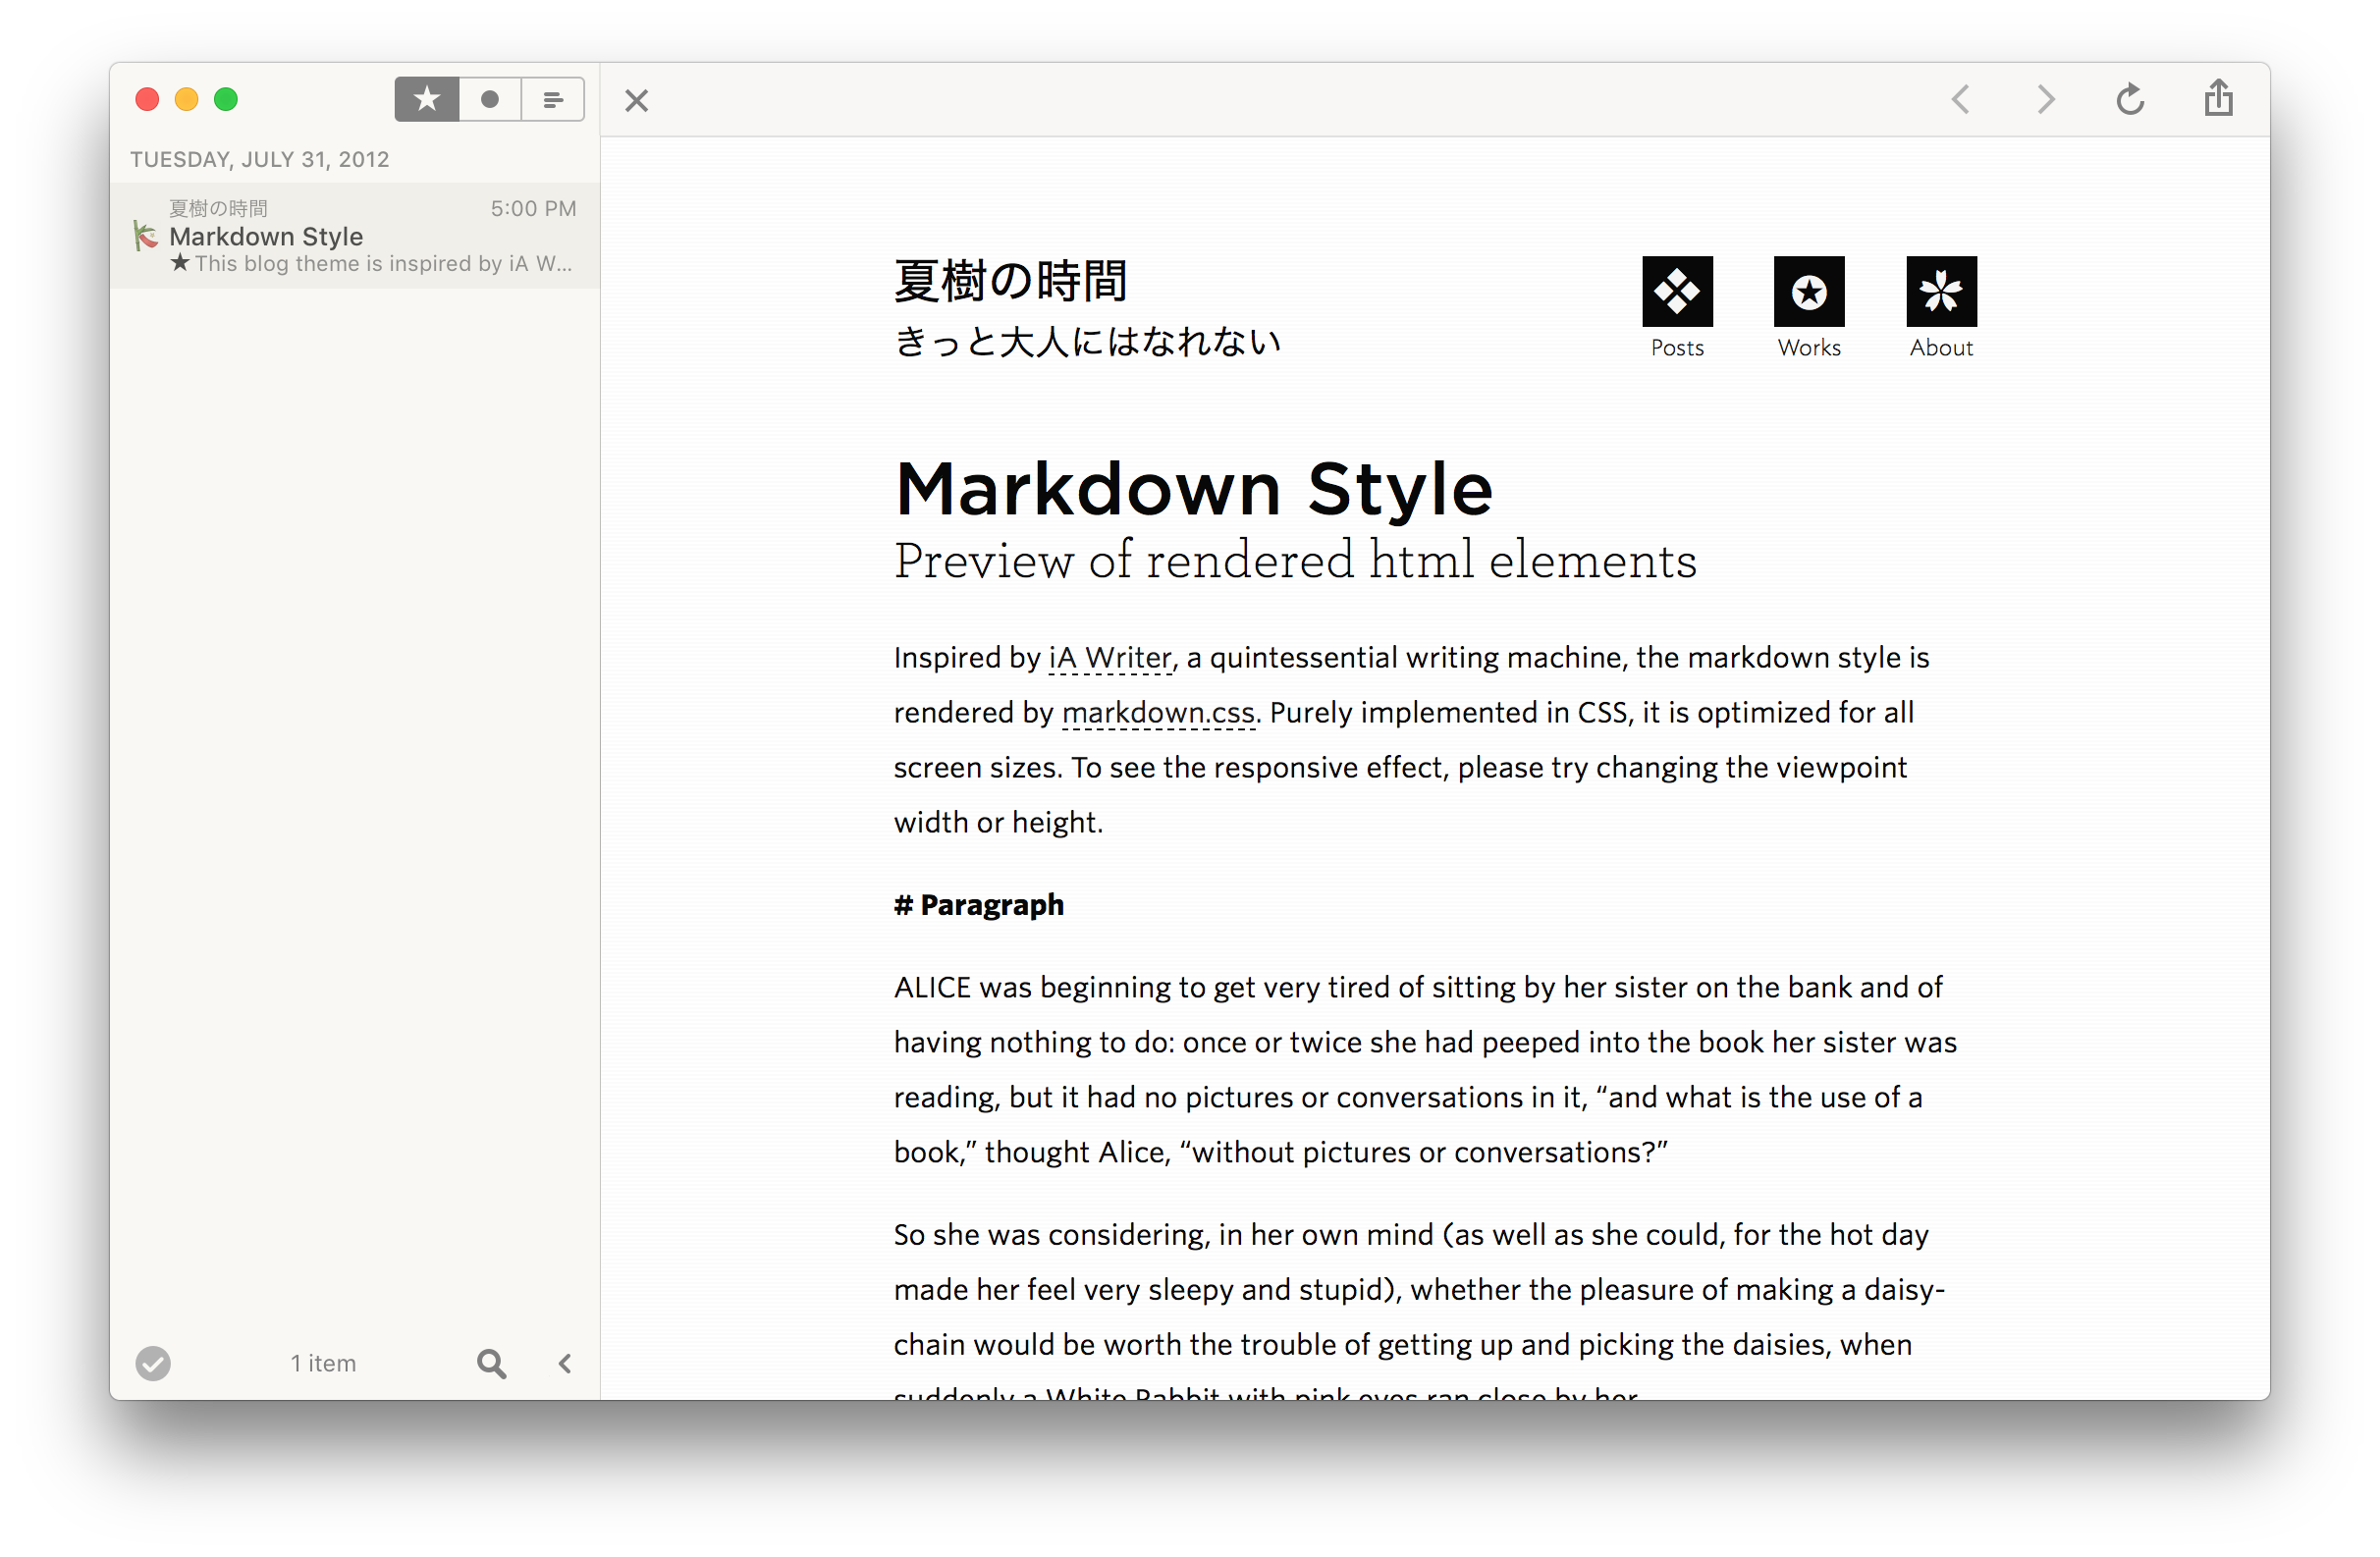 Markdown Style